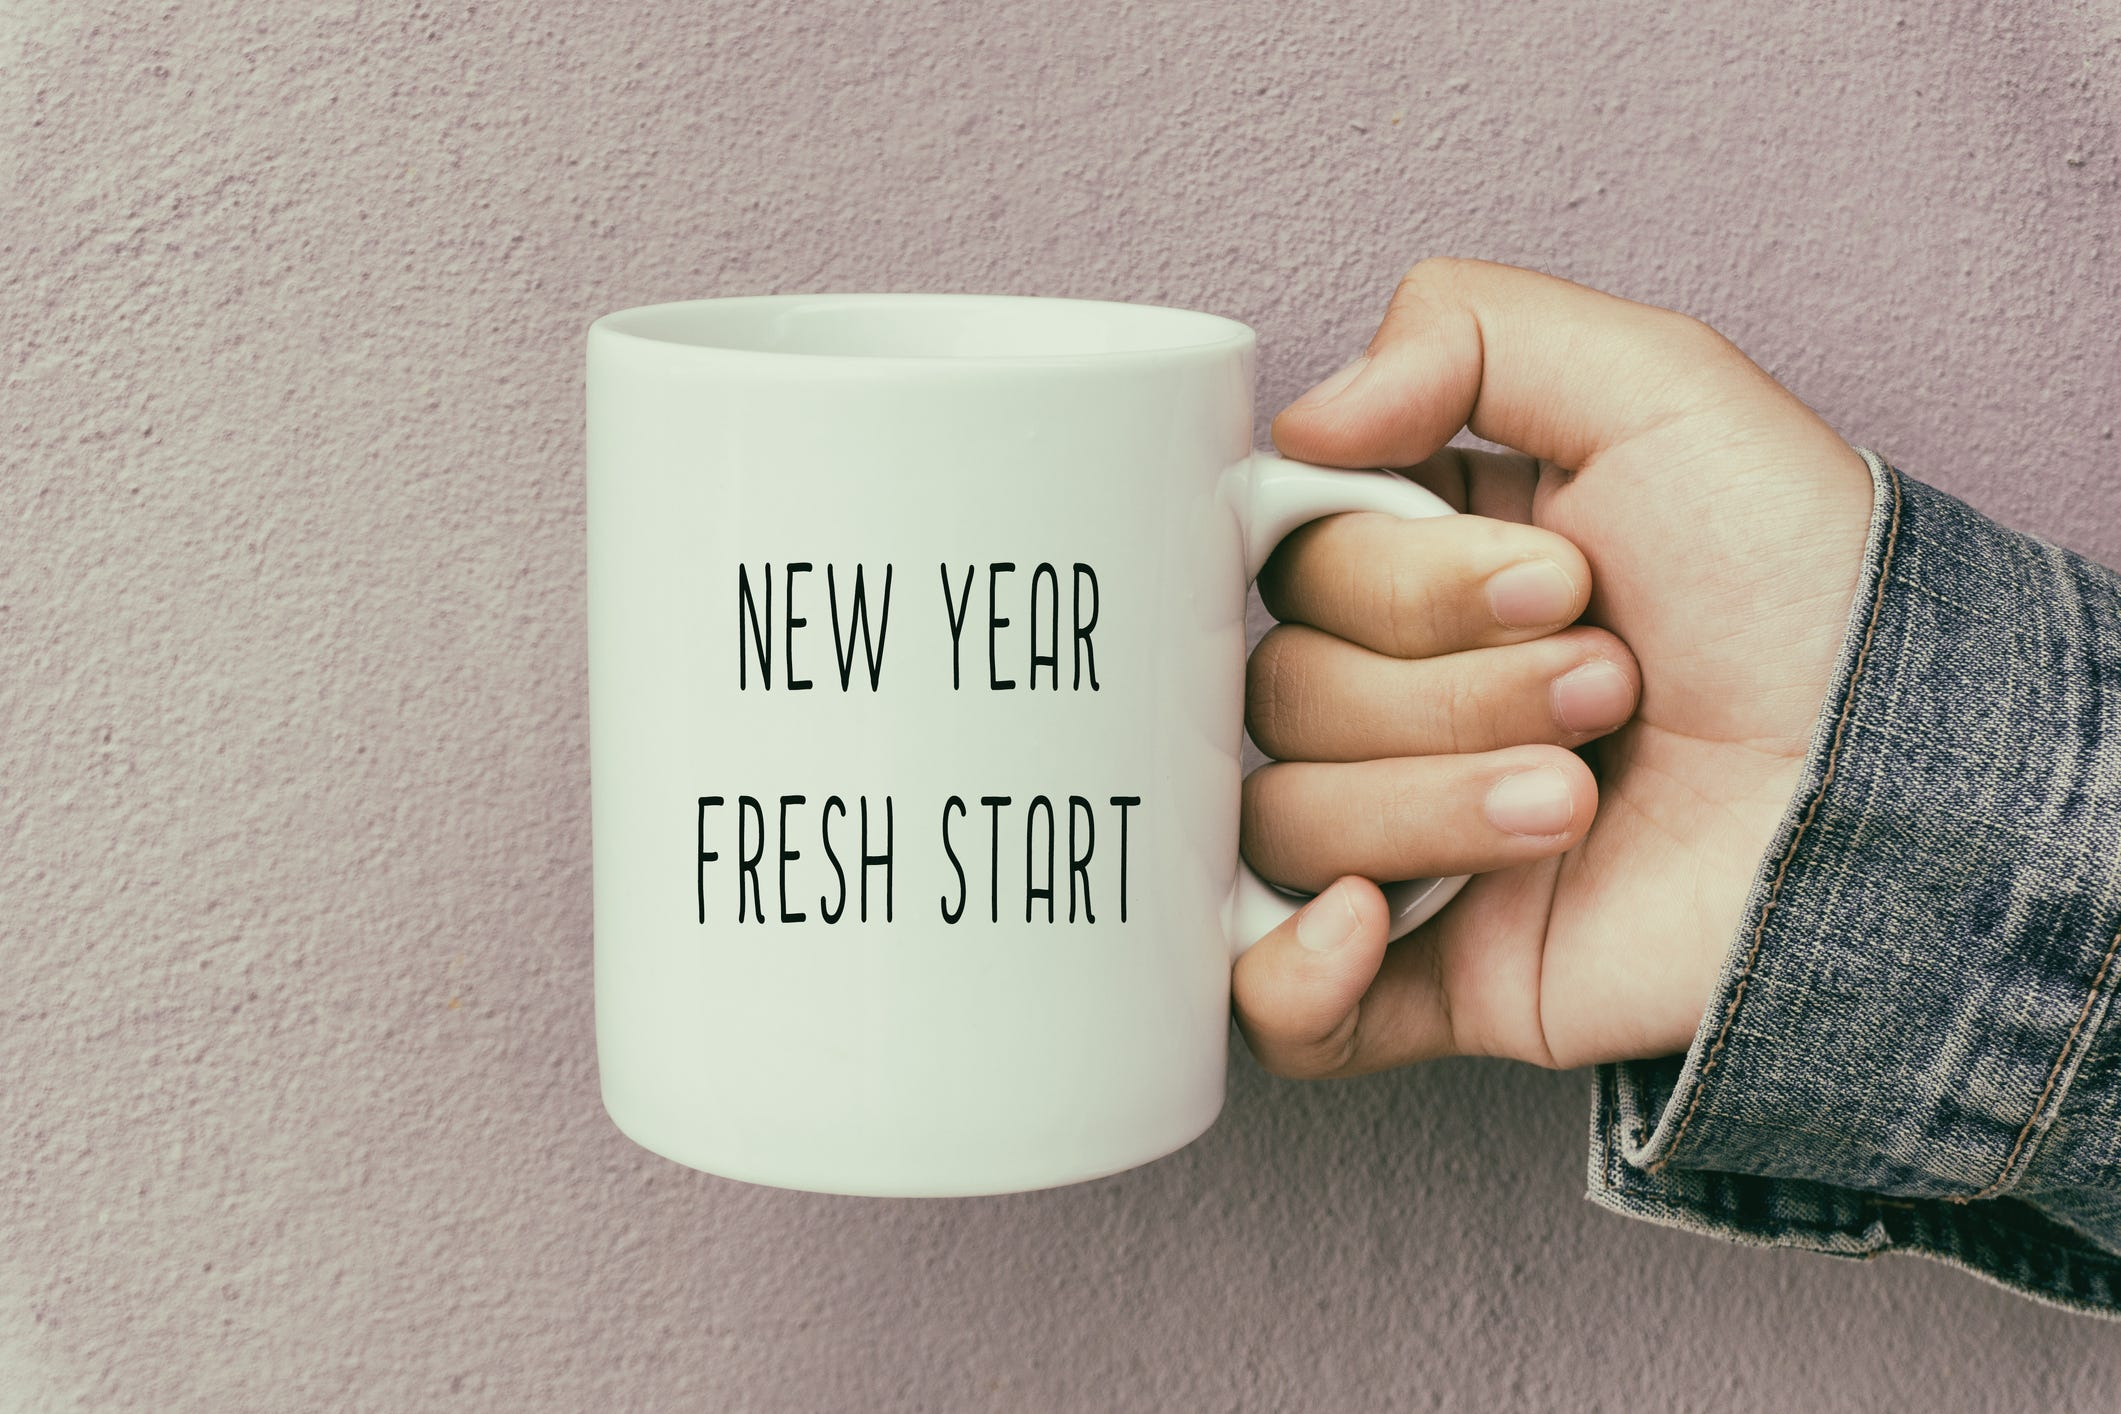 Fresh-start framing is like the New Year's resolution of retirement savingsu00a0– but it works